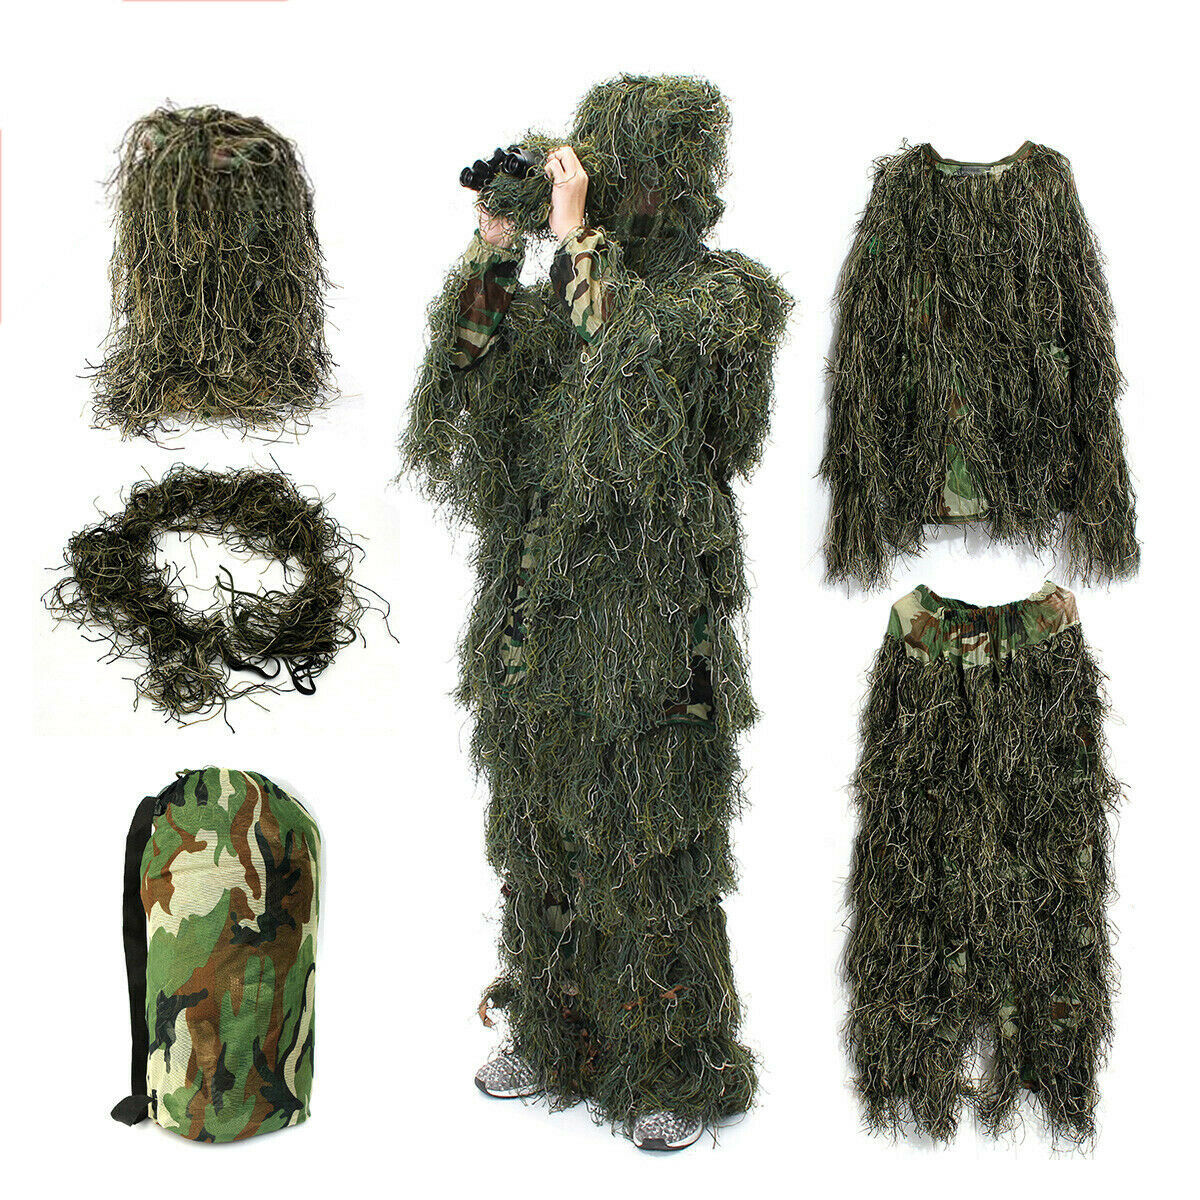 Kids Adult Woodland Camo Ghillie  Suits 3D Sniper Jungle Forest Hunting Hide Suit  new sadie